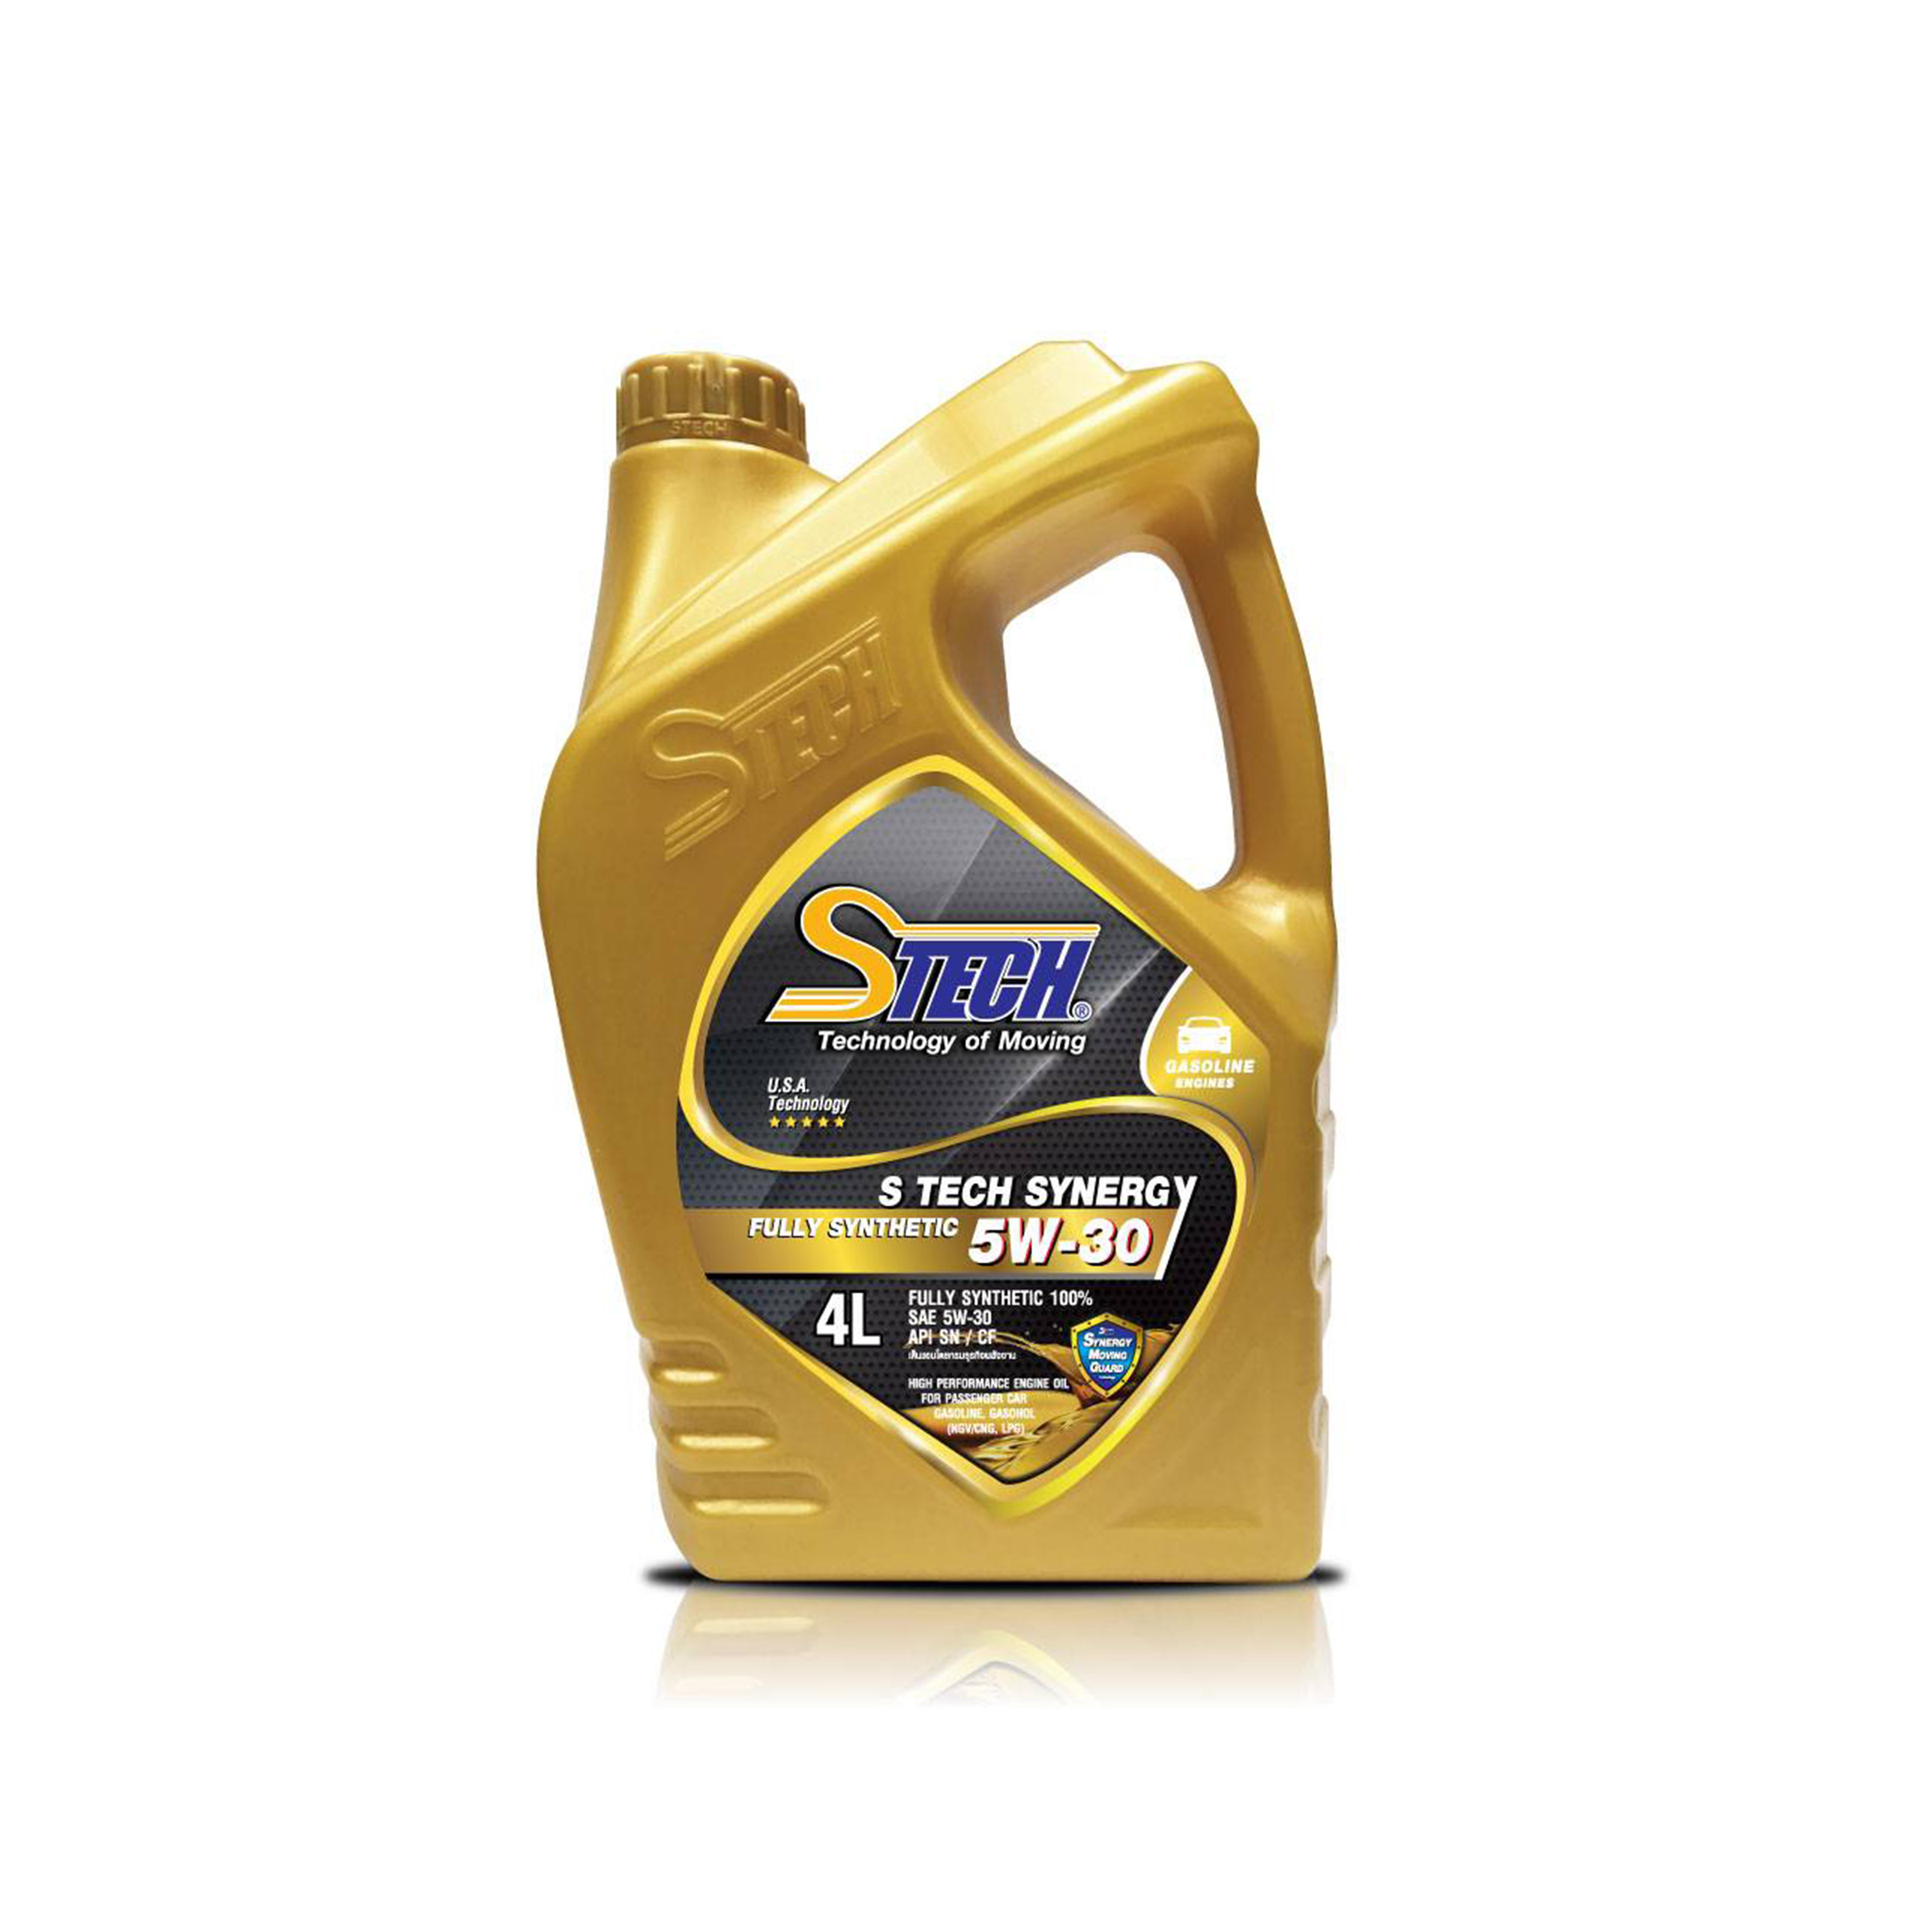 S TECH SYNERGY FULLY SYNTHETIC 5W-30